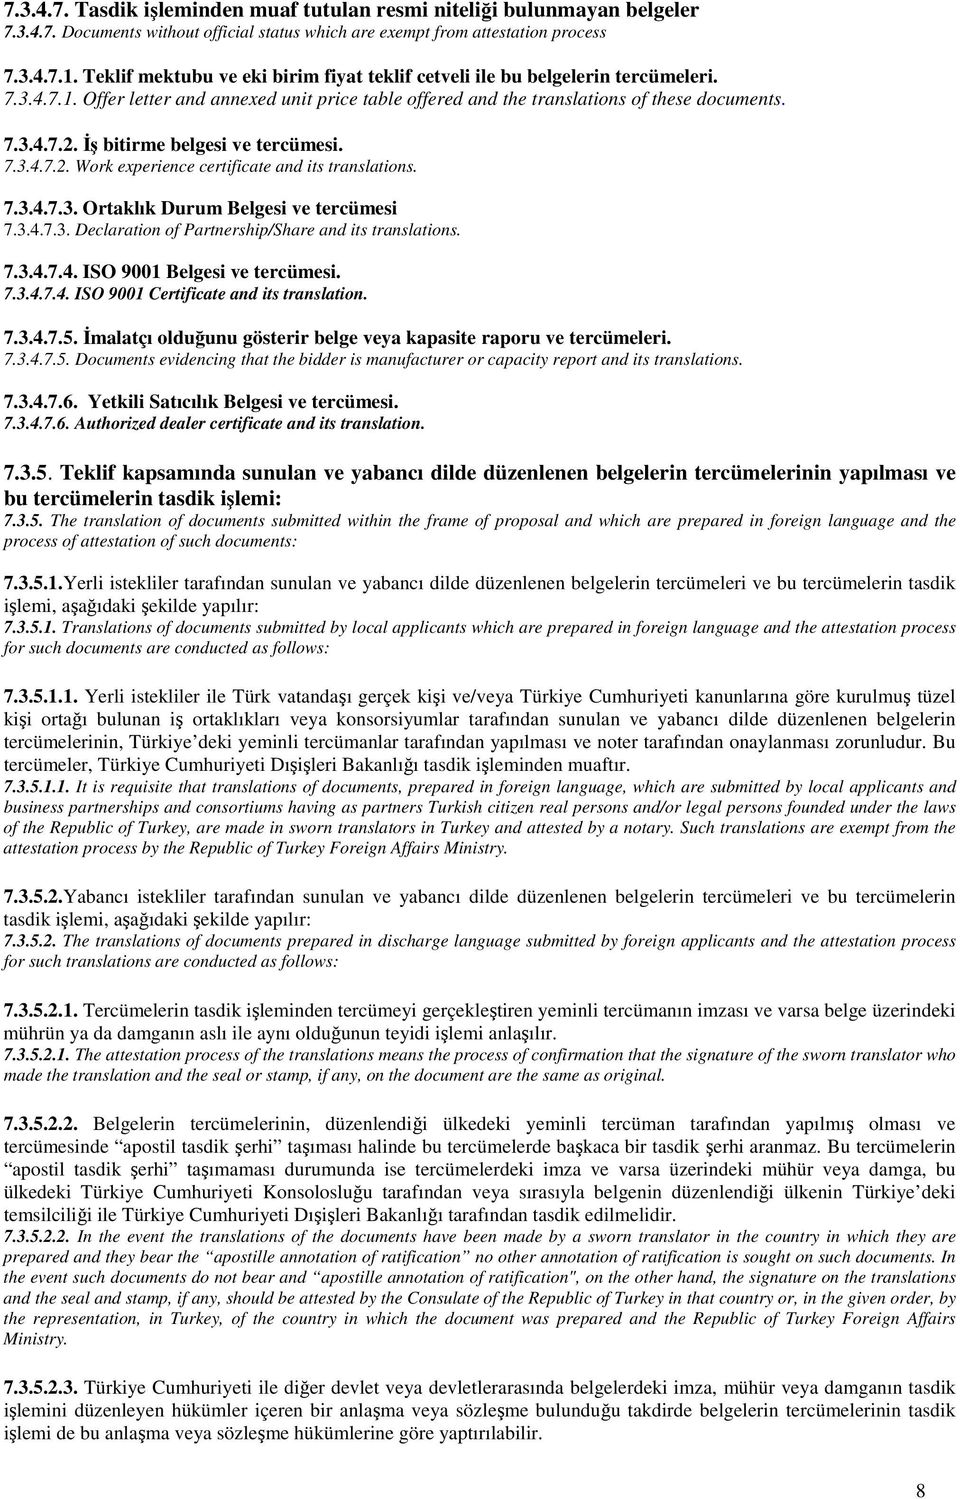 İş bitirme belgesi ve tercümesi. 7.3.4.7.2. Work experience certificate and its translations. 7.3.4.7.3. Ortaklık Durum Belgesi ve tercümesi 7.3.4.7.3. Declaration of Partnership/Share and its translations.